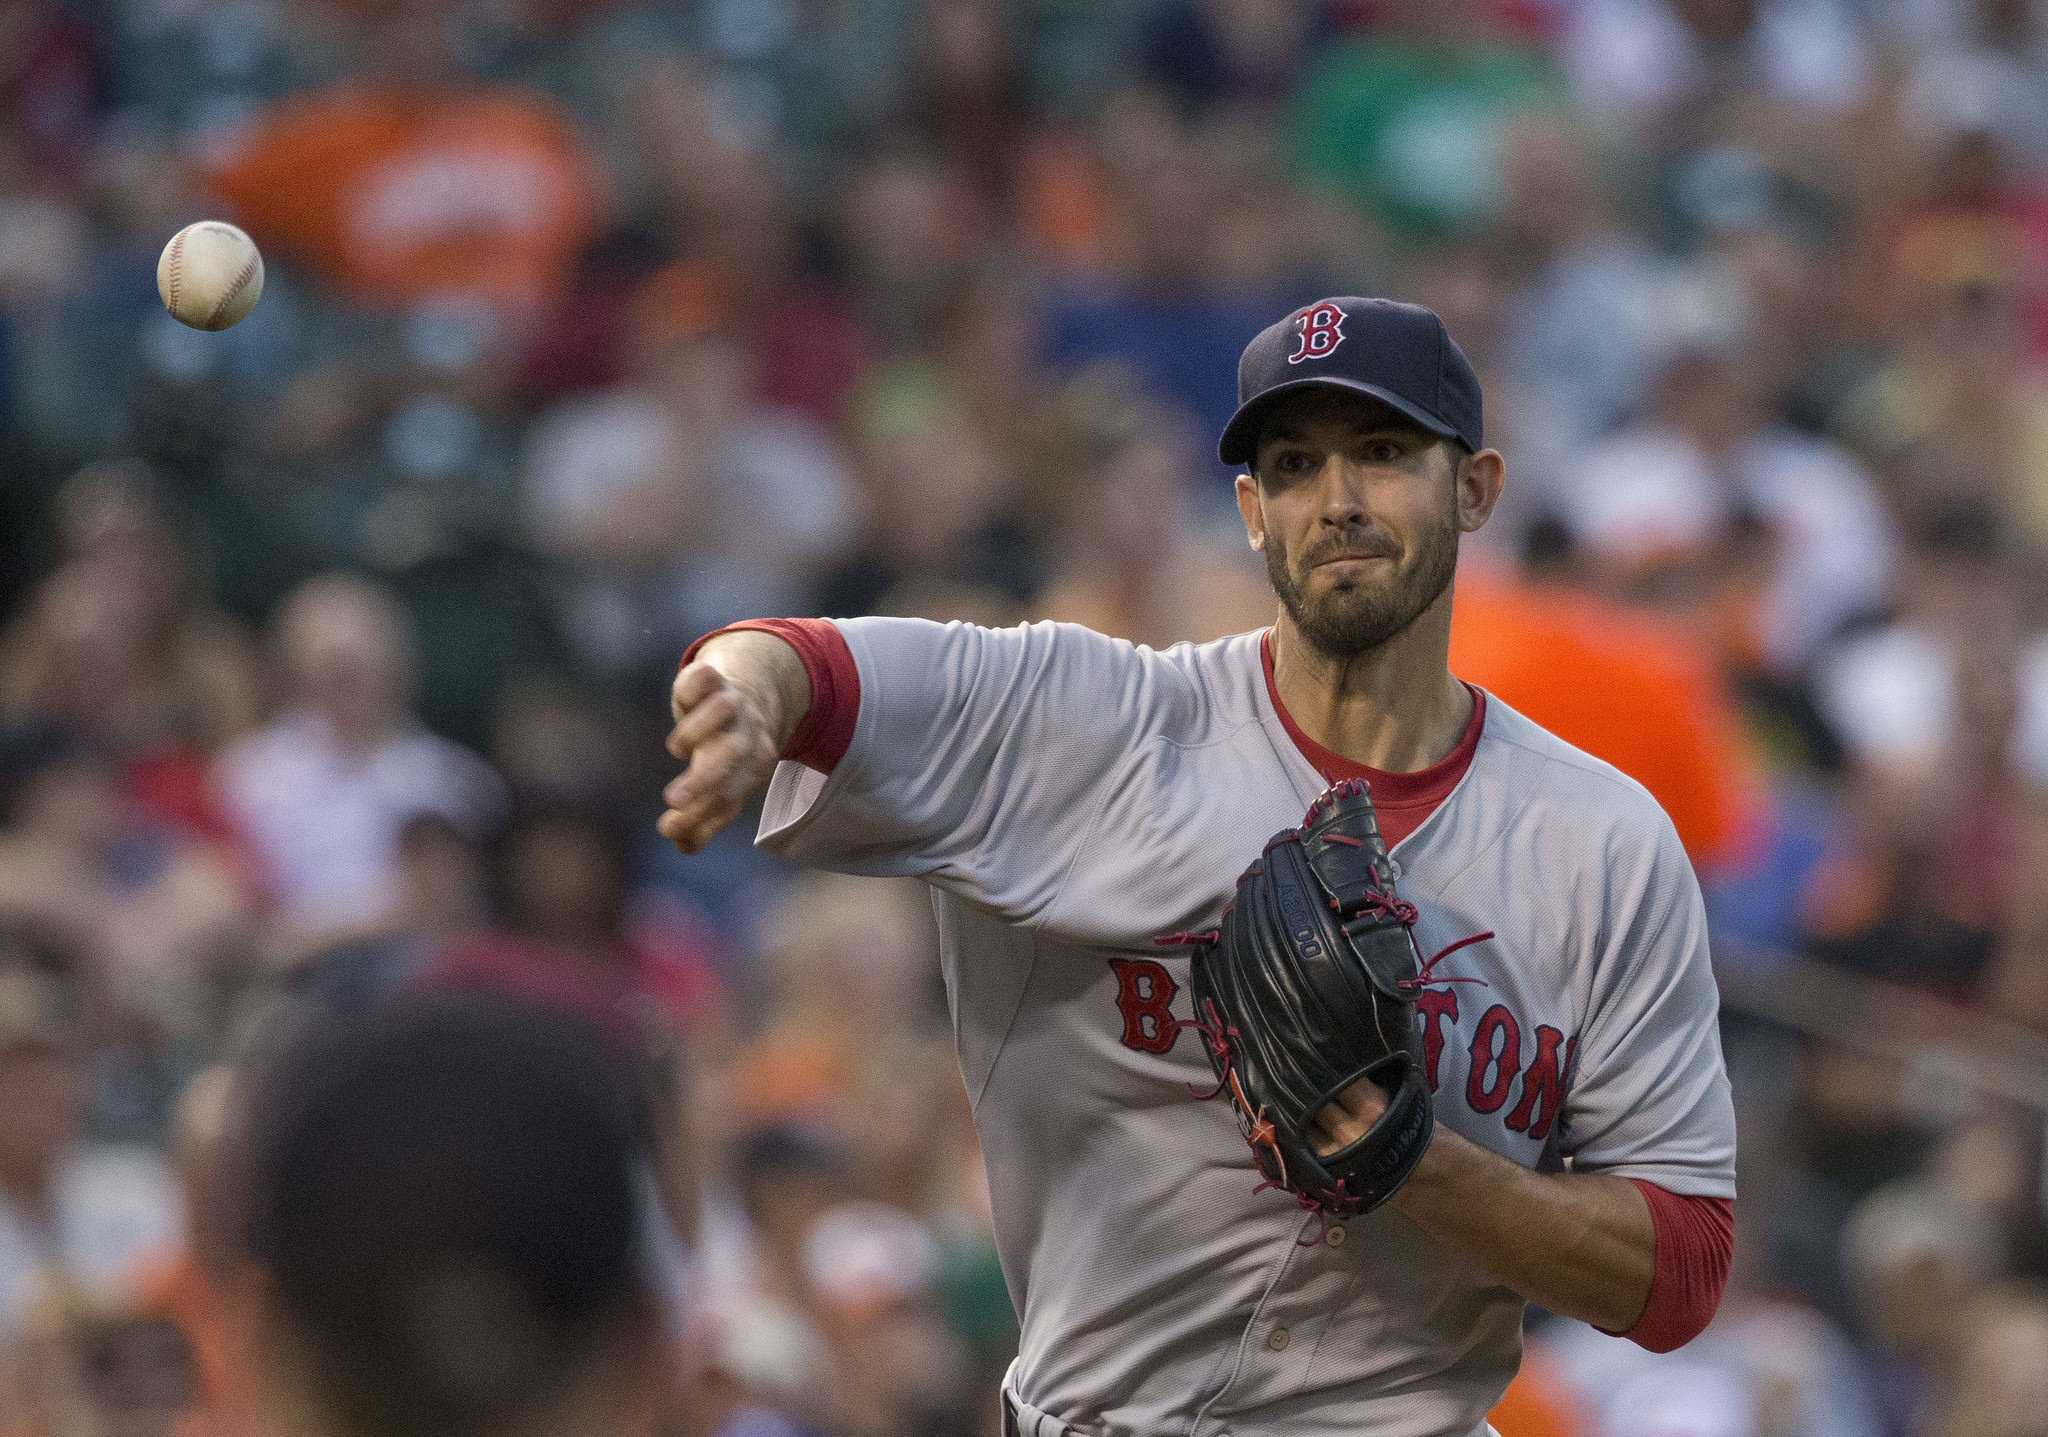 Boston Red Sox pitcher. Rick Porcello is 22-4 with a 3.11 ERA. Photo: Flickr/Keith Allison.